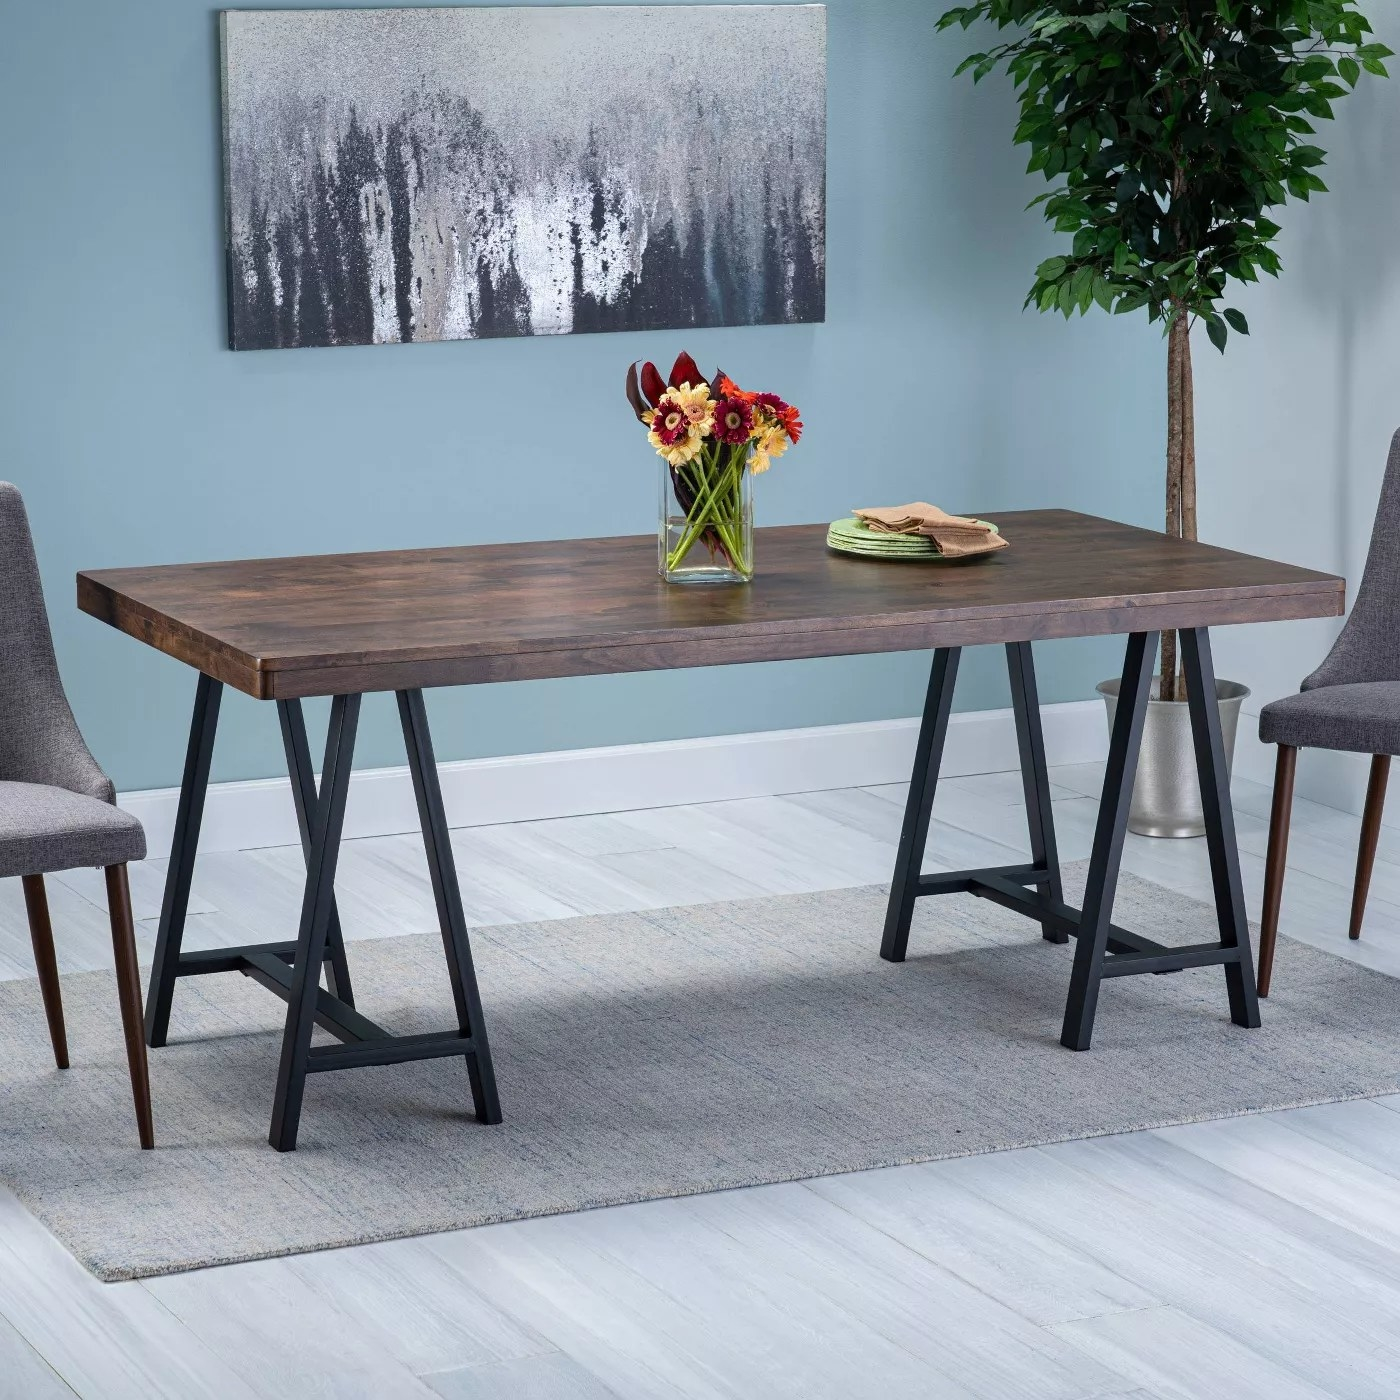 A 70-inch dining table with a walnut countertop and black iron, sawhorse-style legs